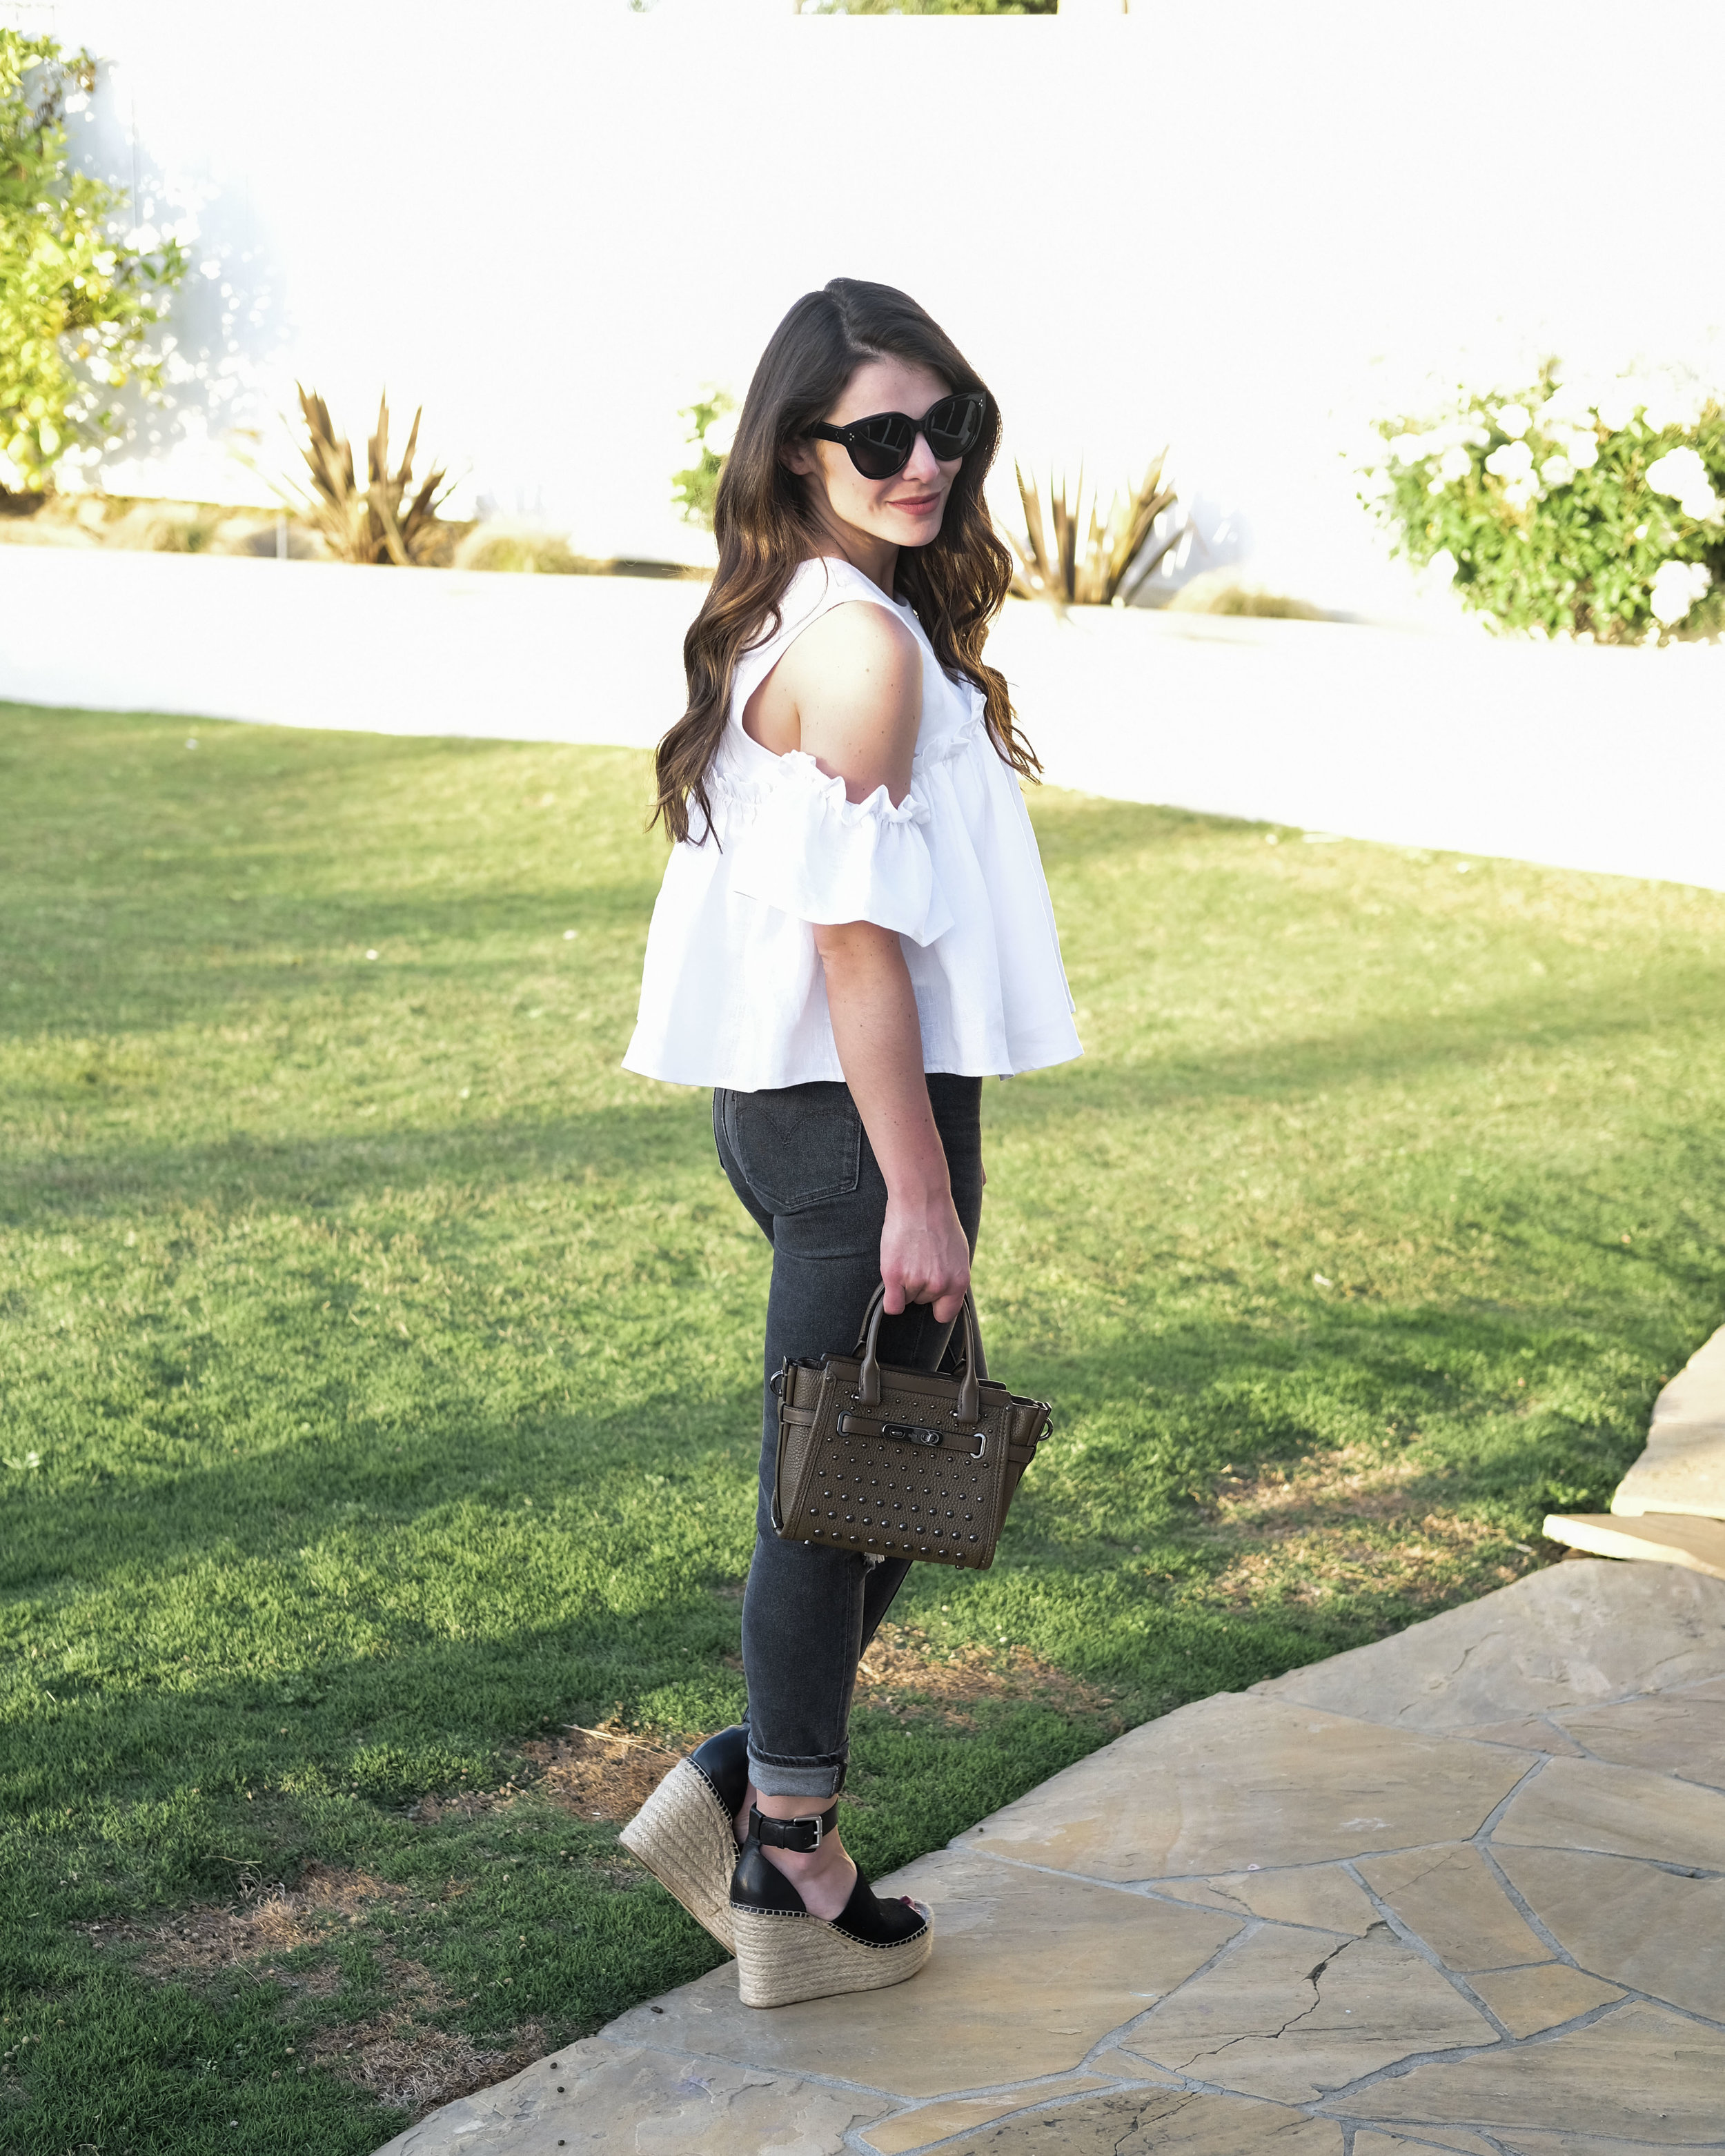 J.O.A. linen cold shoulder top, Levi's 721 high rise skinny jeans, Marc Fisher Adalyn wedges in Black, Coach swagger bag, Celine Audrey sunglasses.  Cute outfit for California vacation.